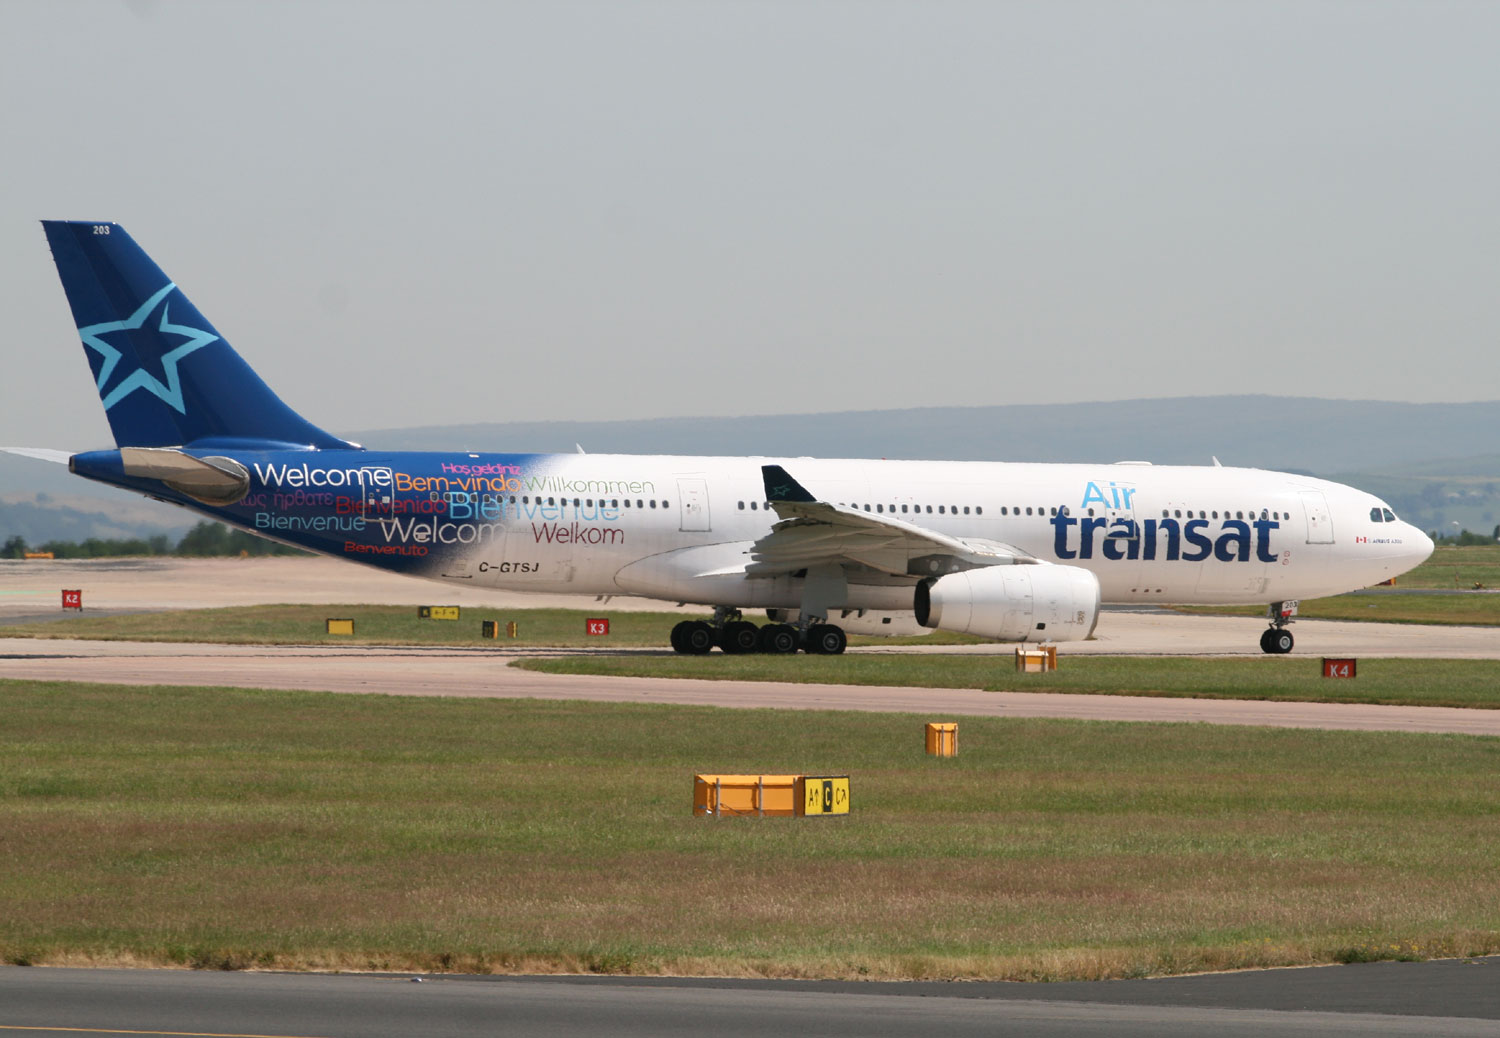 air transat to lease 737s airport spotting